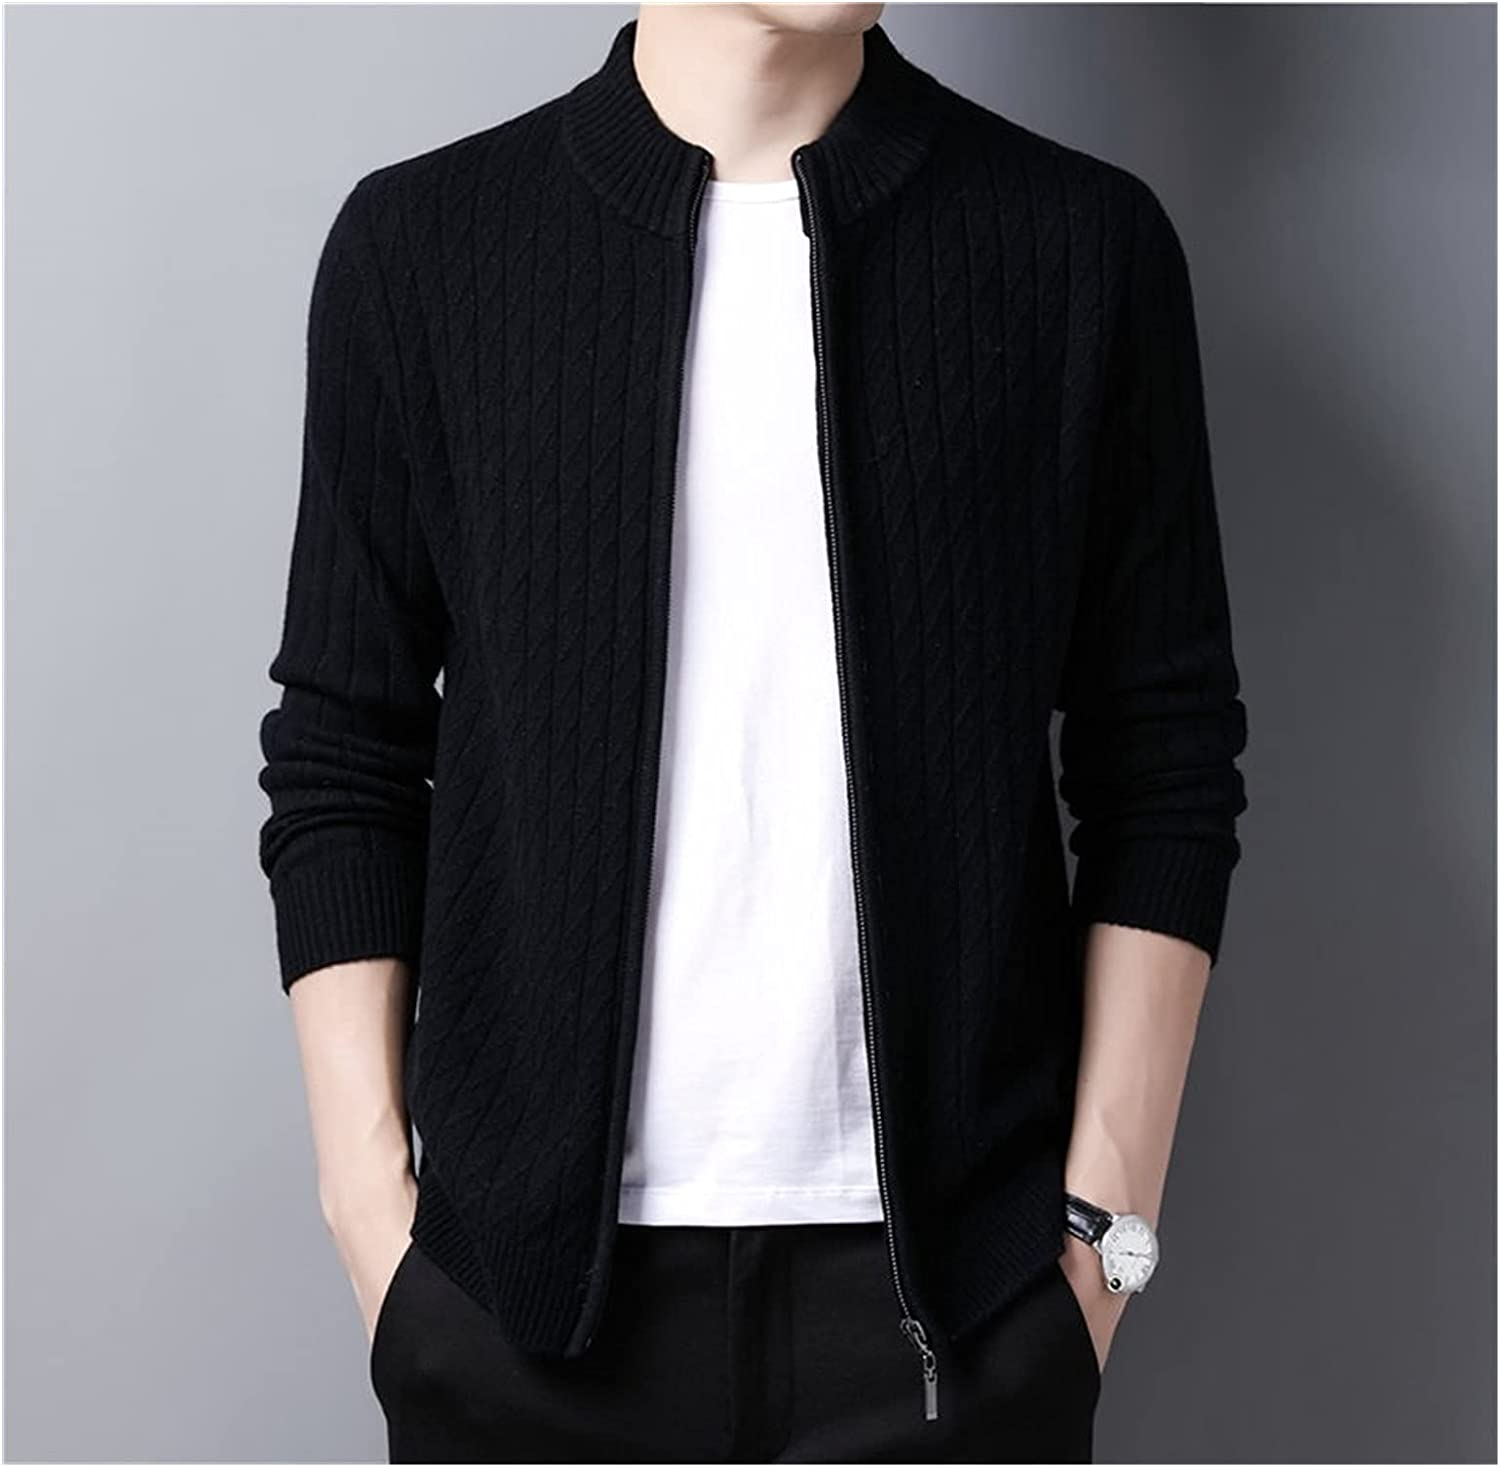 GYZX Sweater Men Wool Cardigan Men Clothing Autumn Winter Thick Warm Sweatercoat (Color : Black, Size : M Code)